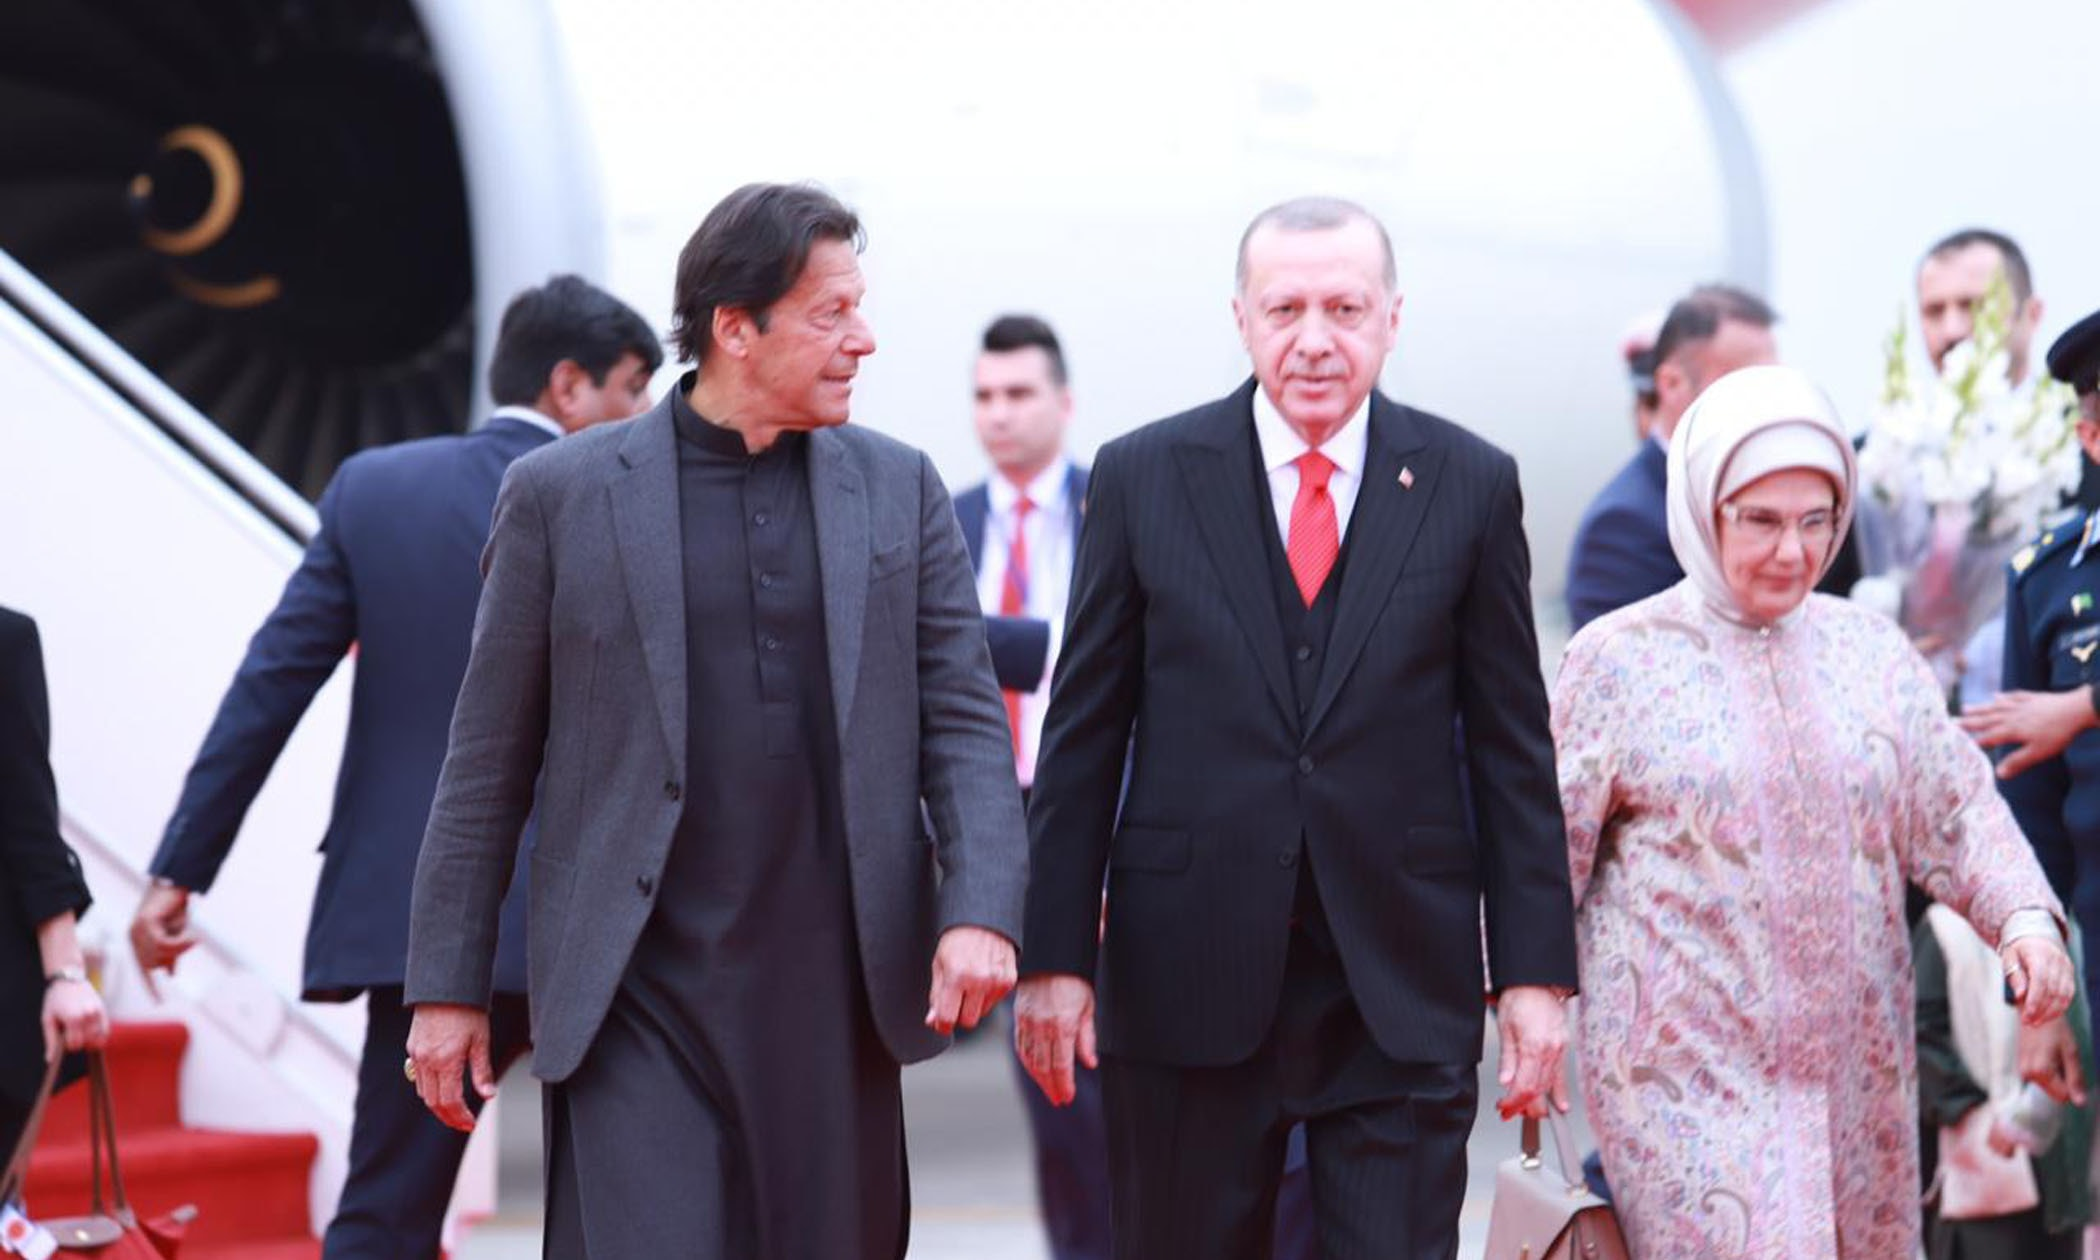 Prime Minister Imran Khan receives President of Turkey Recep Tayyip Erdogan upon arrival in Islamabad on February 13. — PID